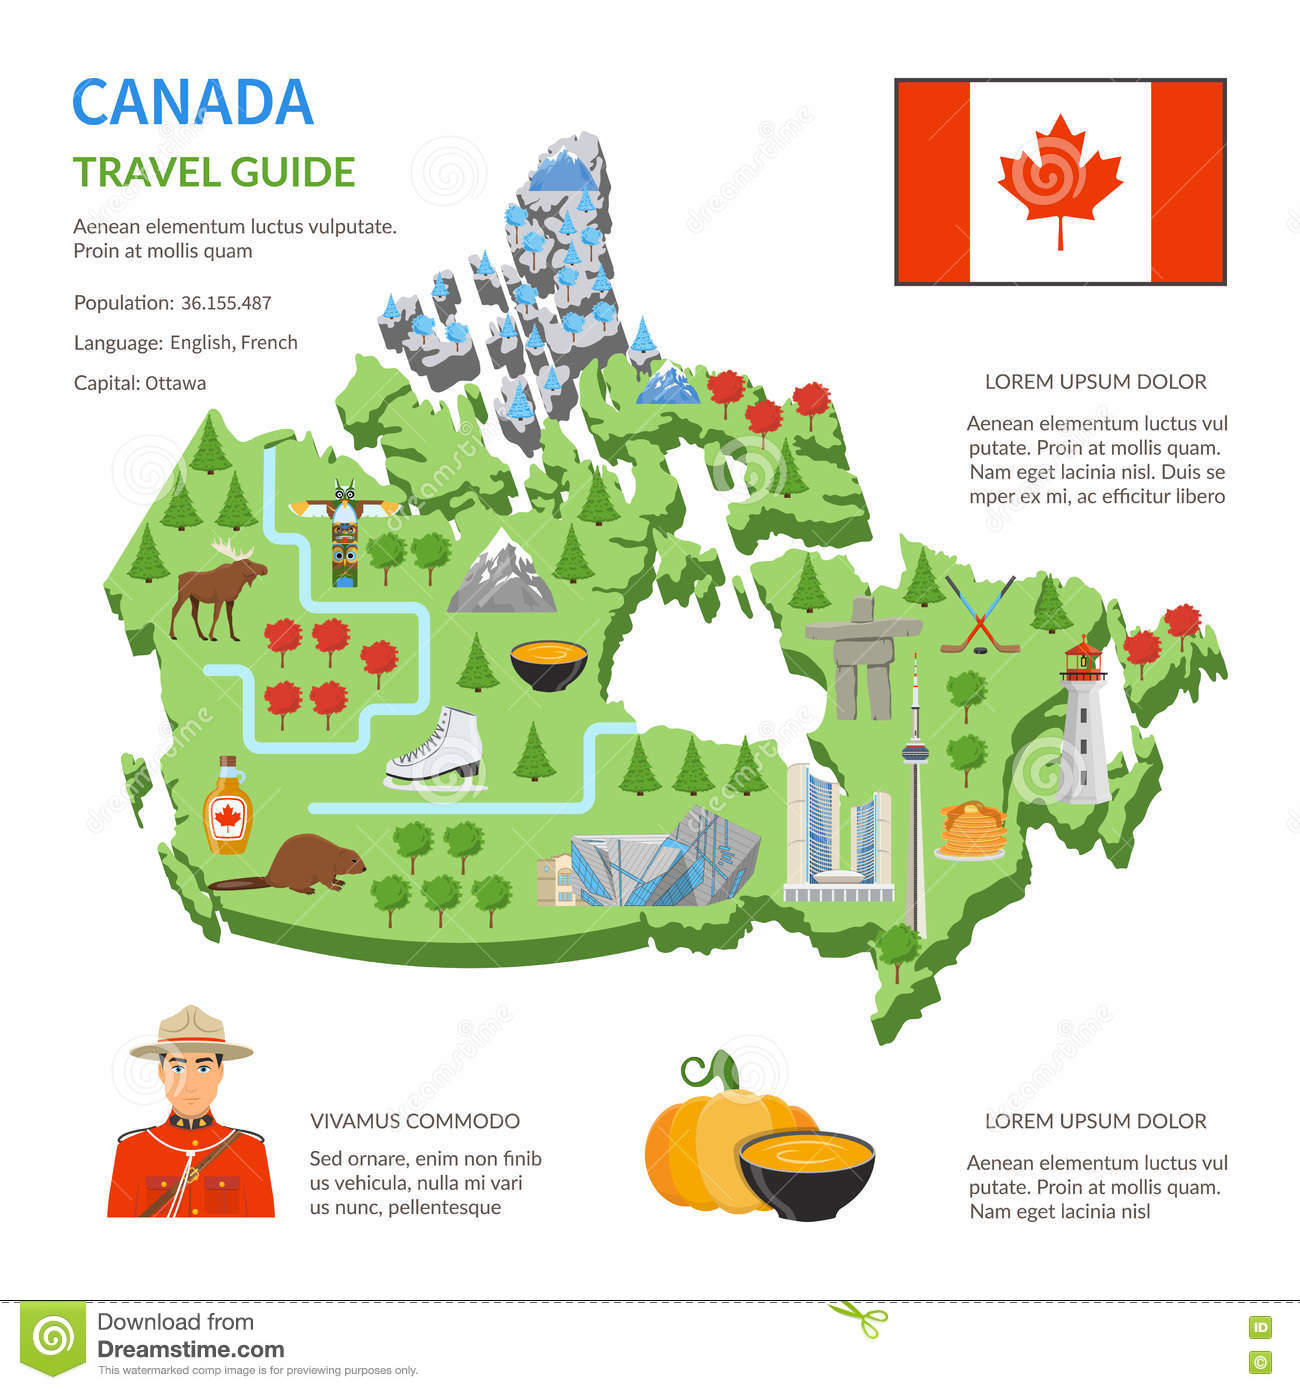 Canada Travel Guide Skyline Flat Map Poster Vector